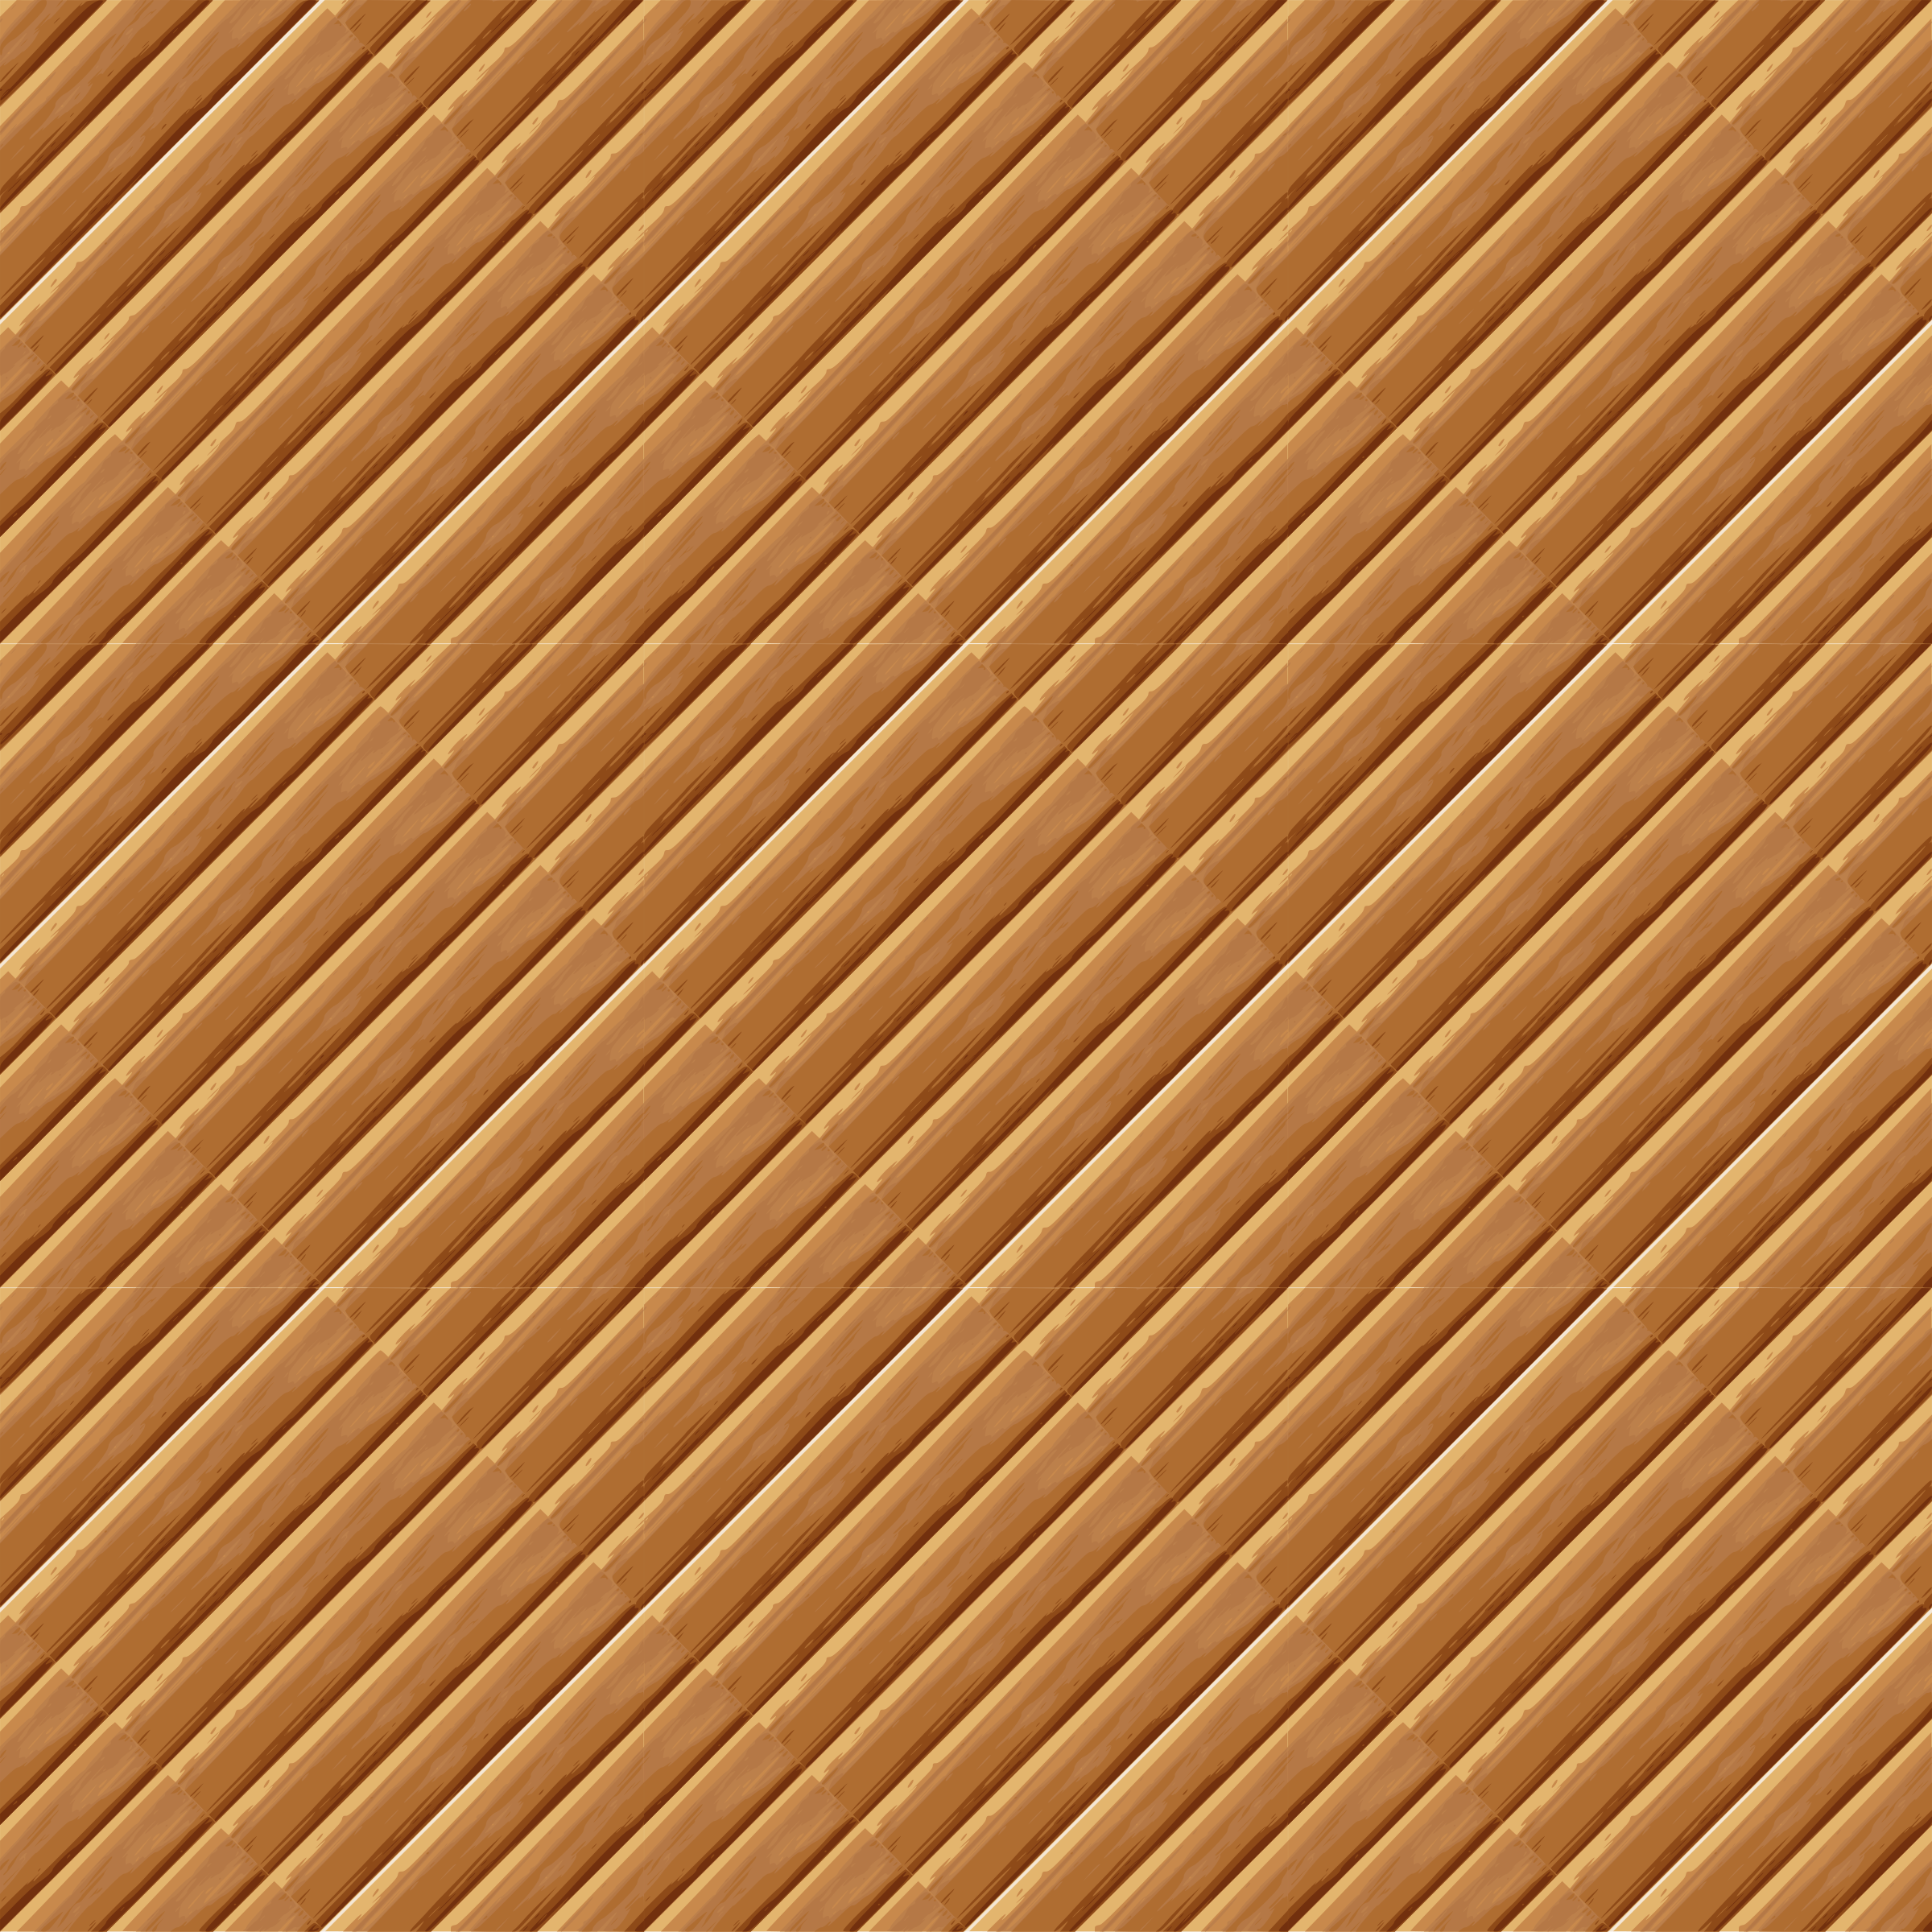 Woody texture-seamless pattern 05 by yamachem